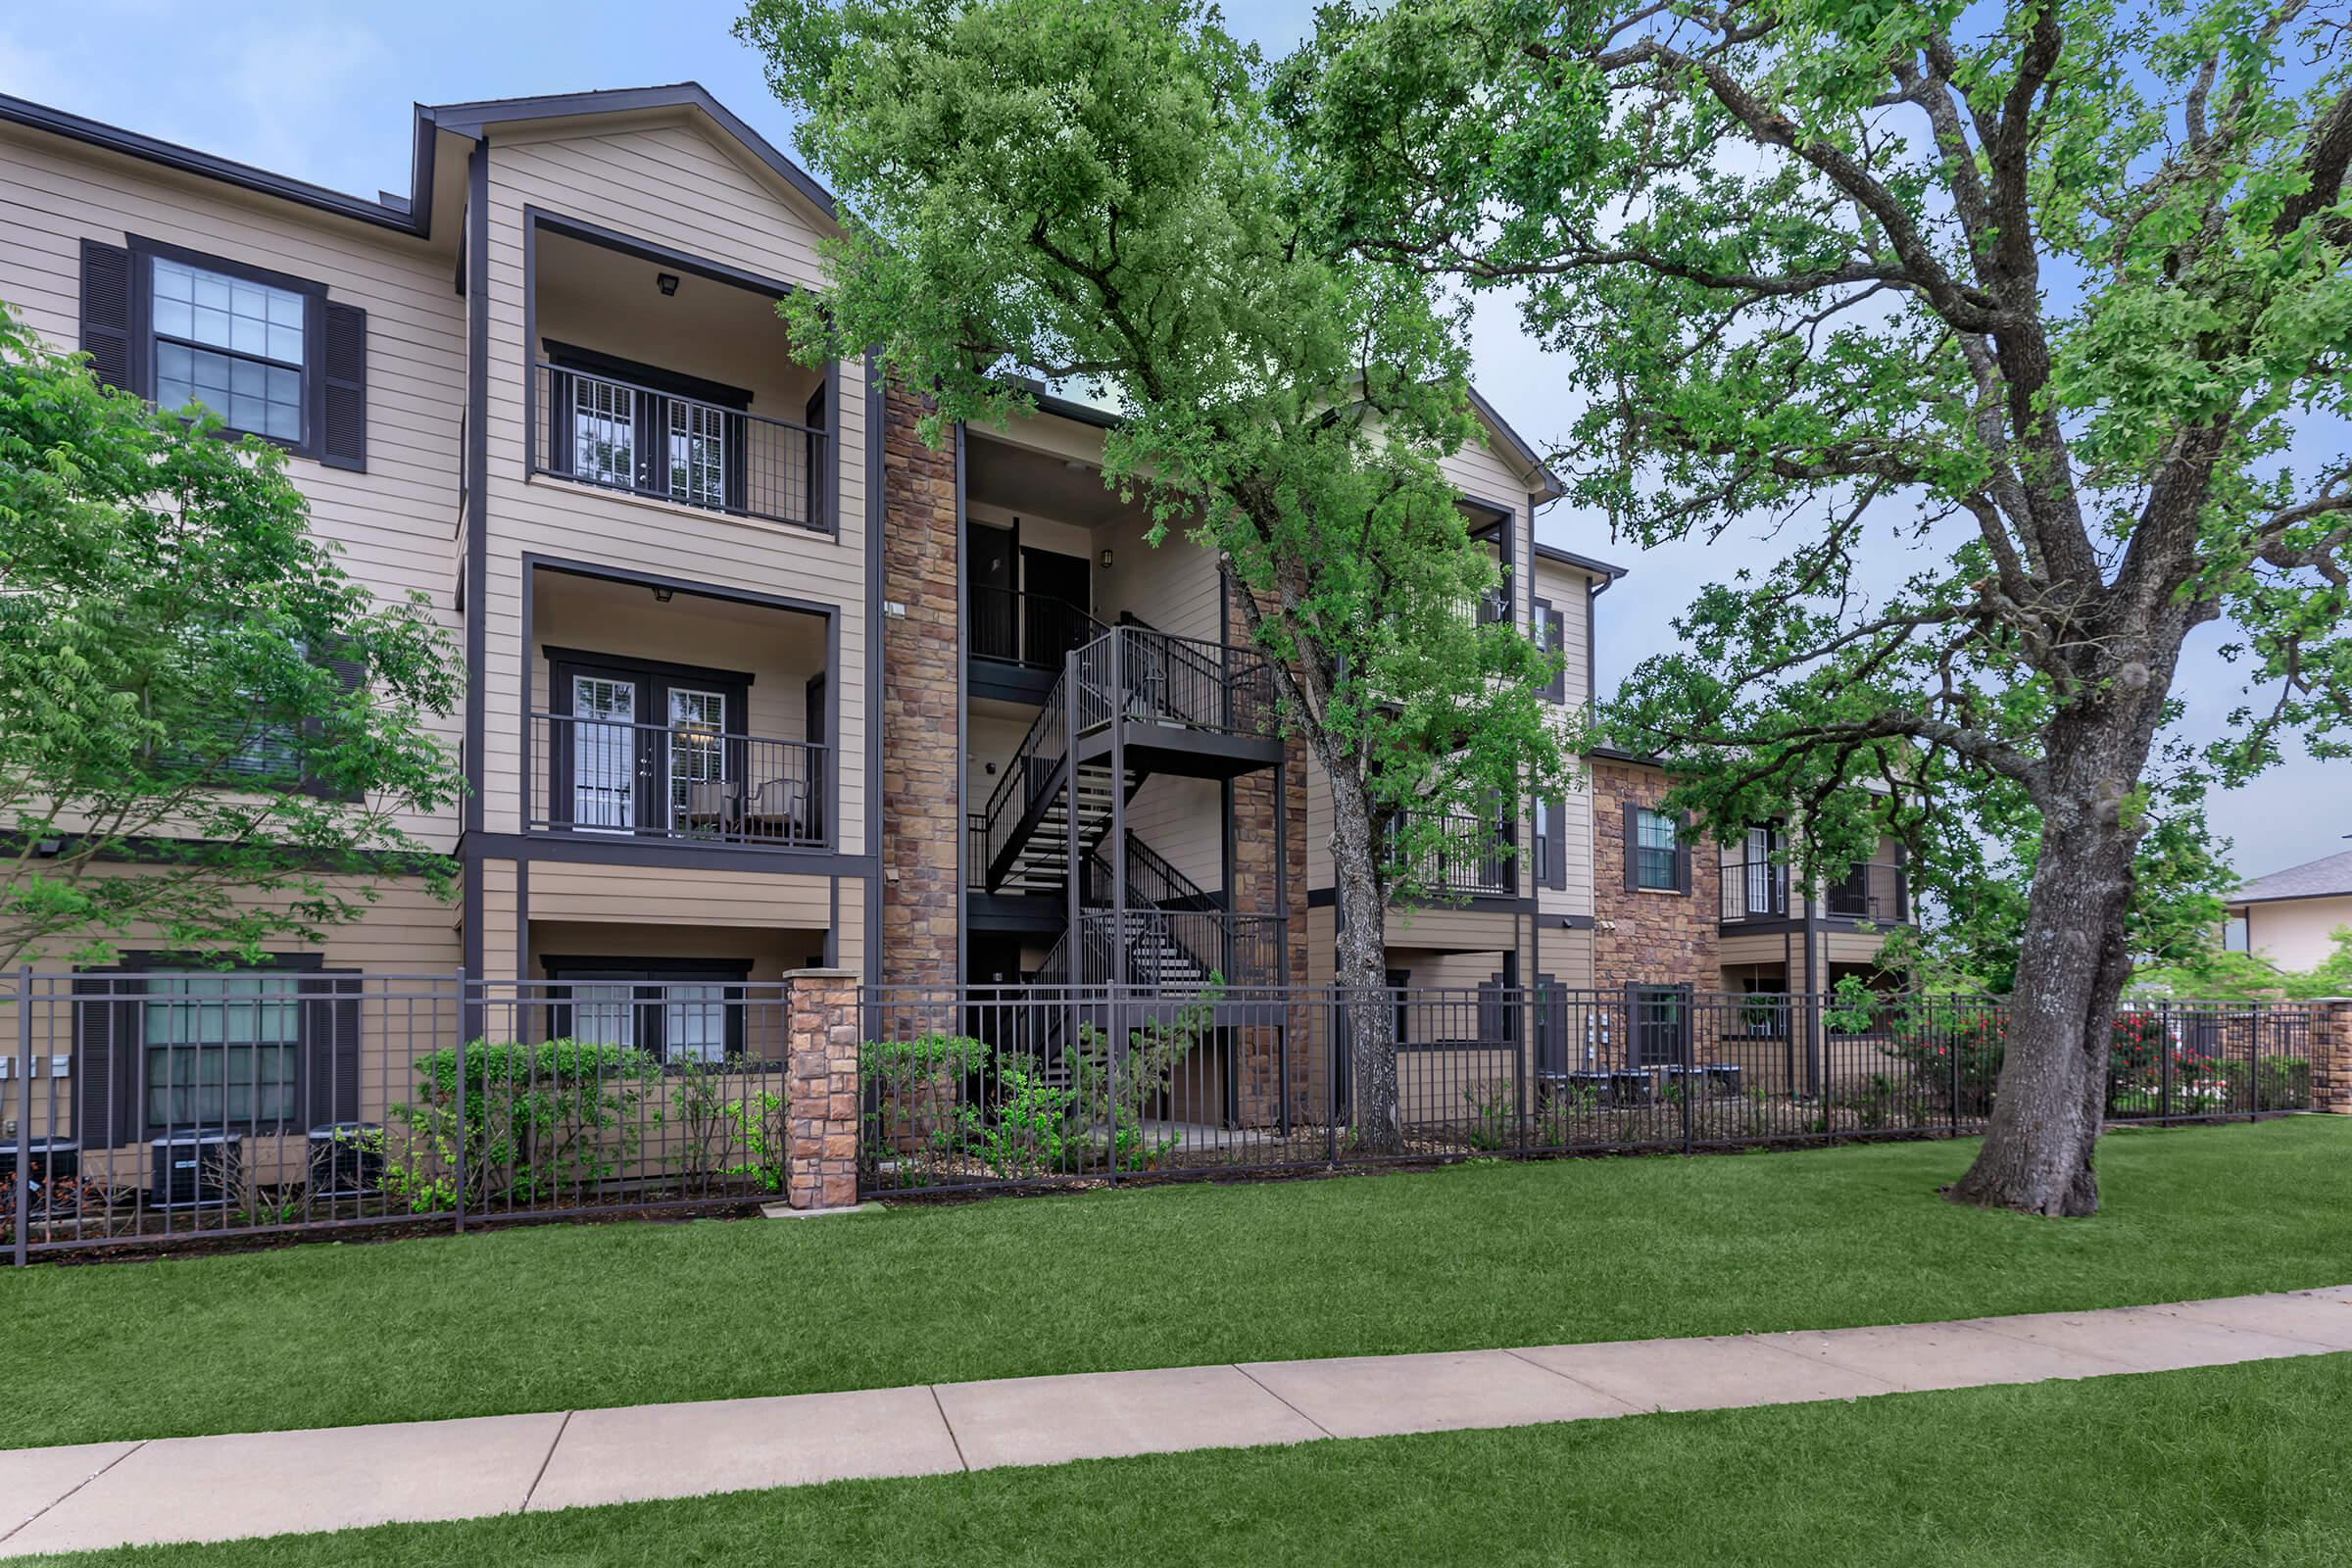 EXTRAORDINARY APARTMENTS FOR RENT IN BRYAN, TEXAS